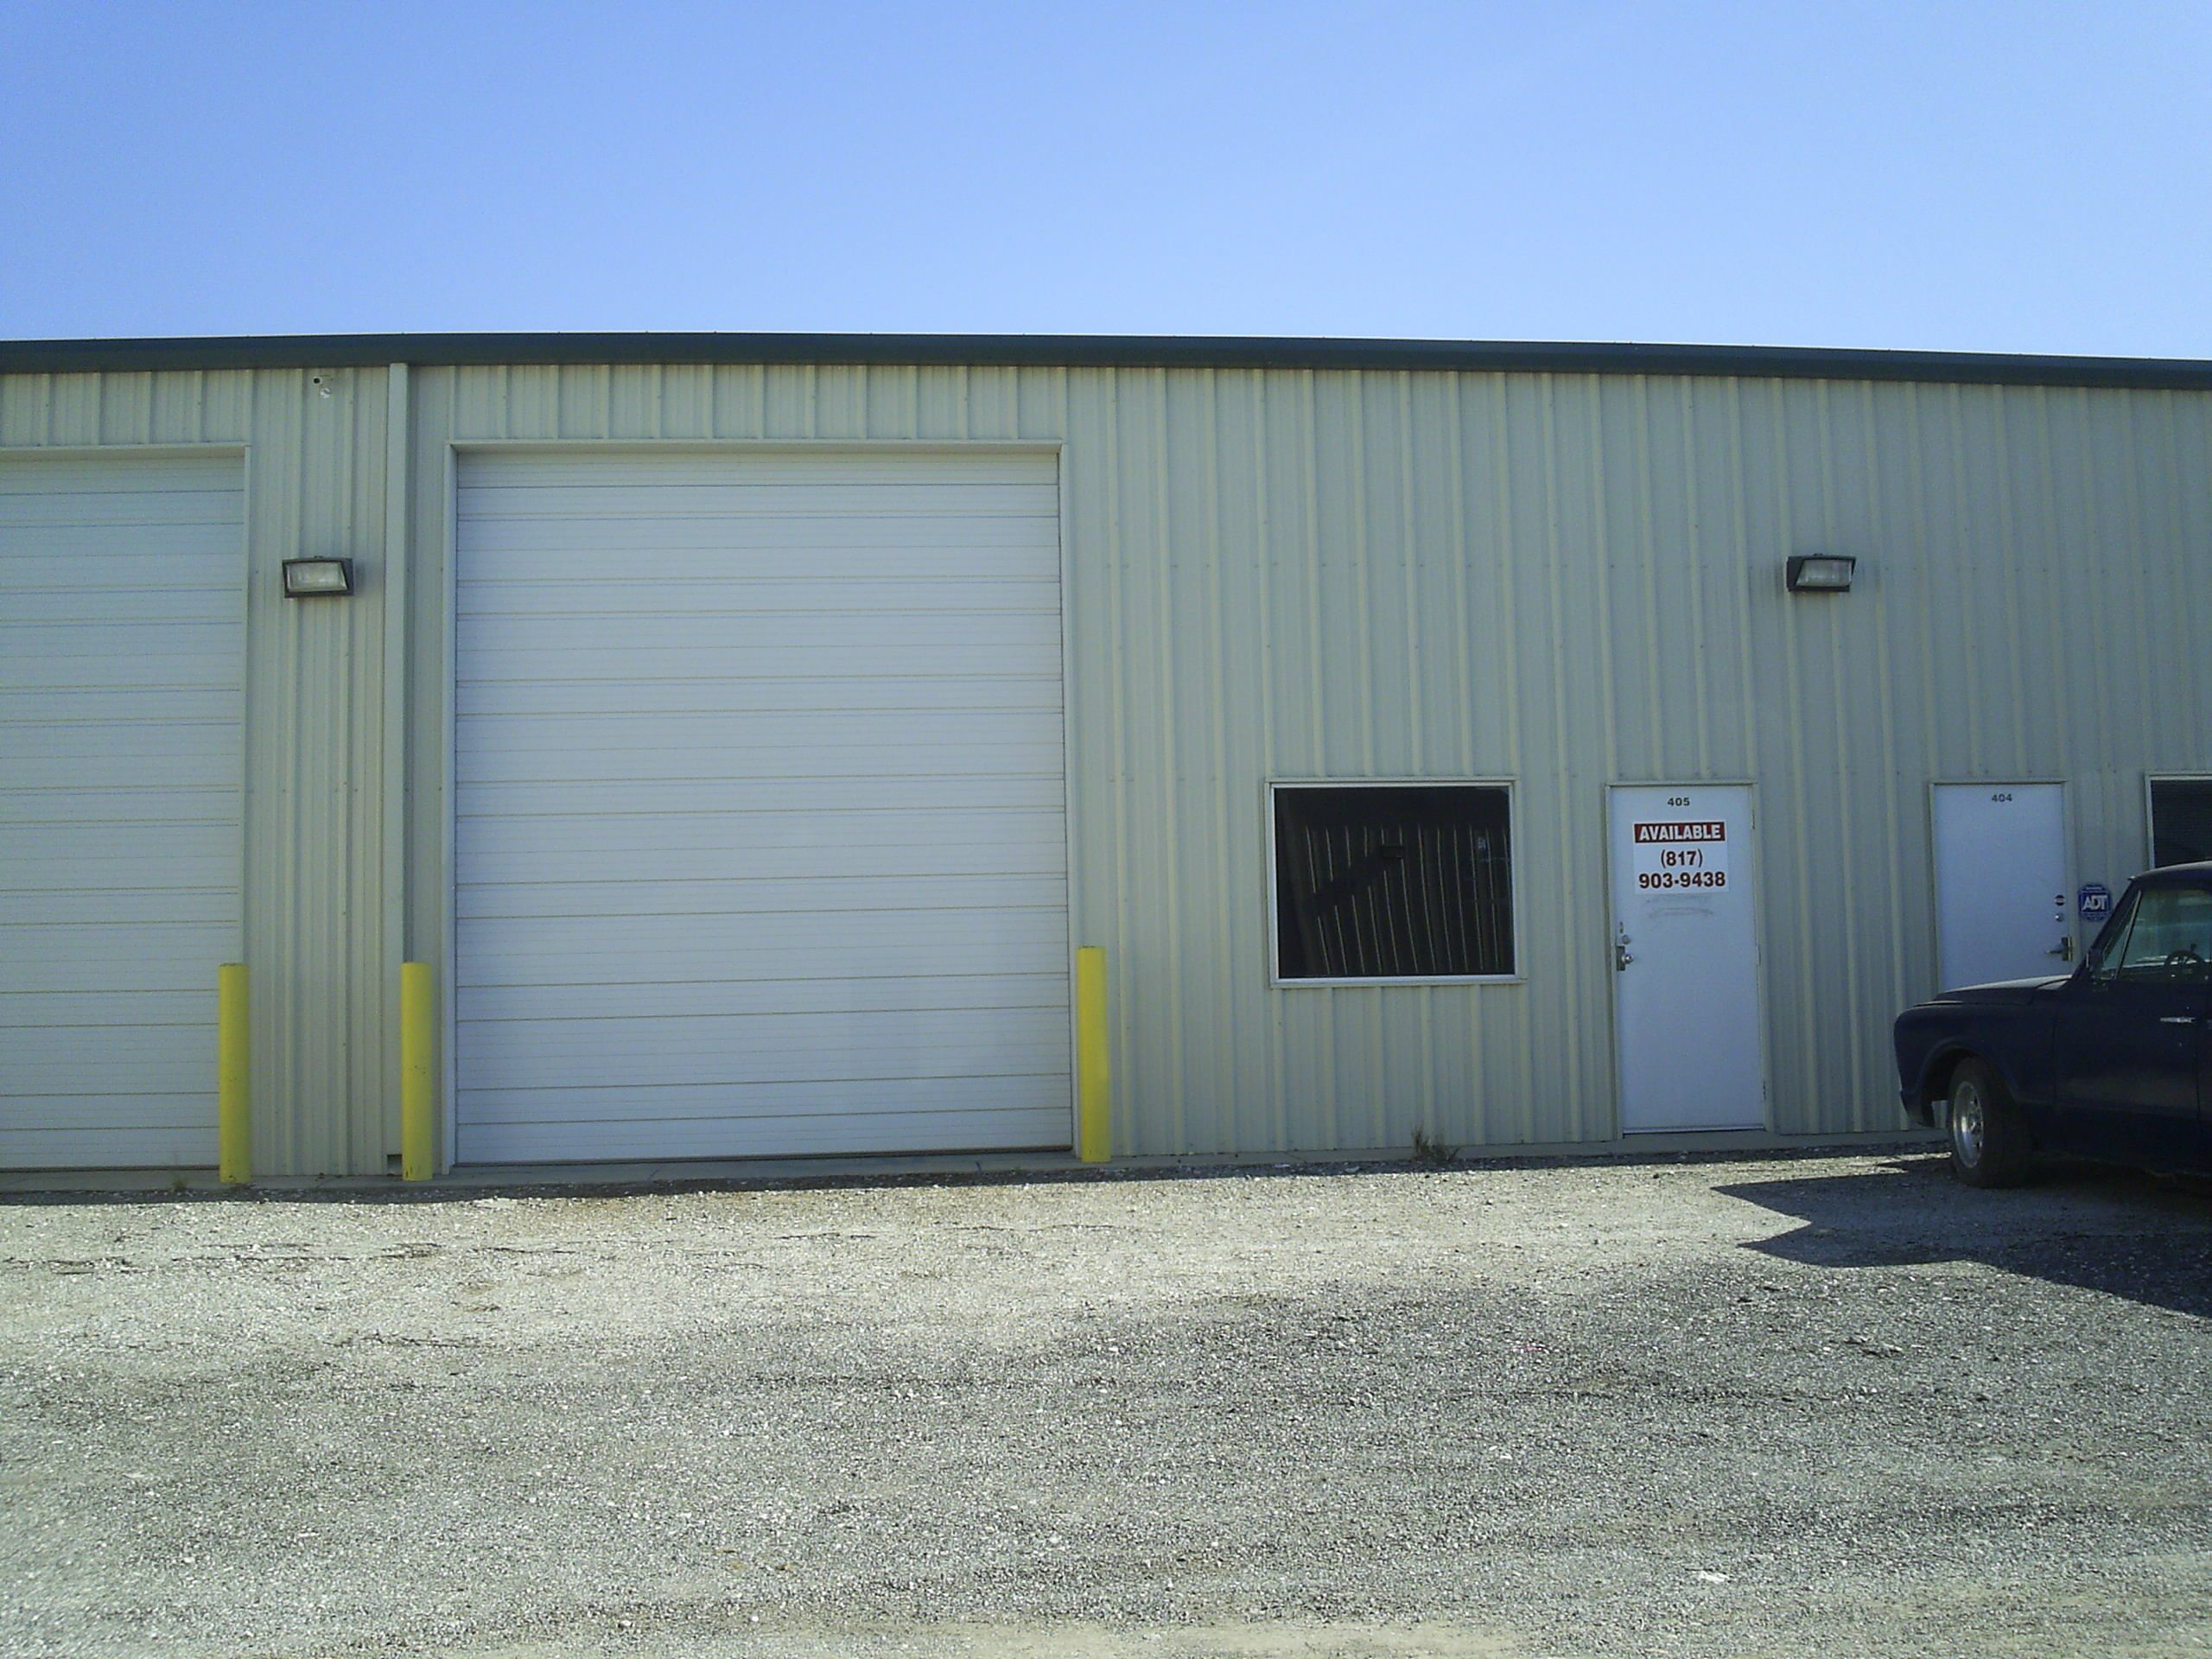 Storage Garage Near Me Garage For Rent Near Me  Httpundhimmigarageforrentnear